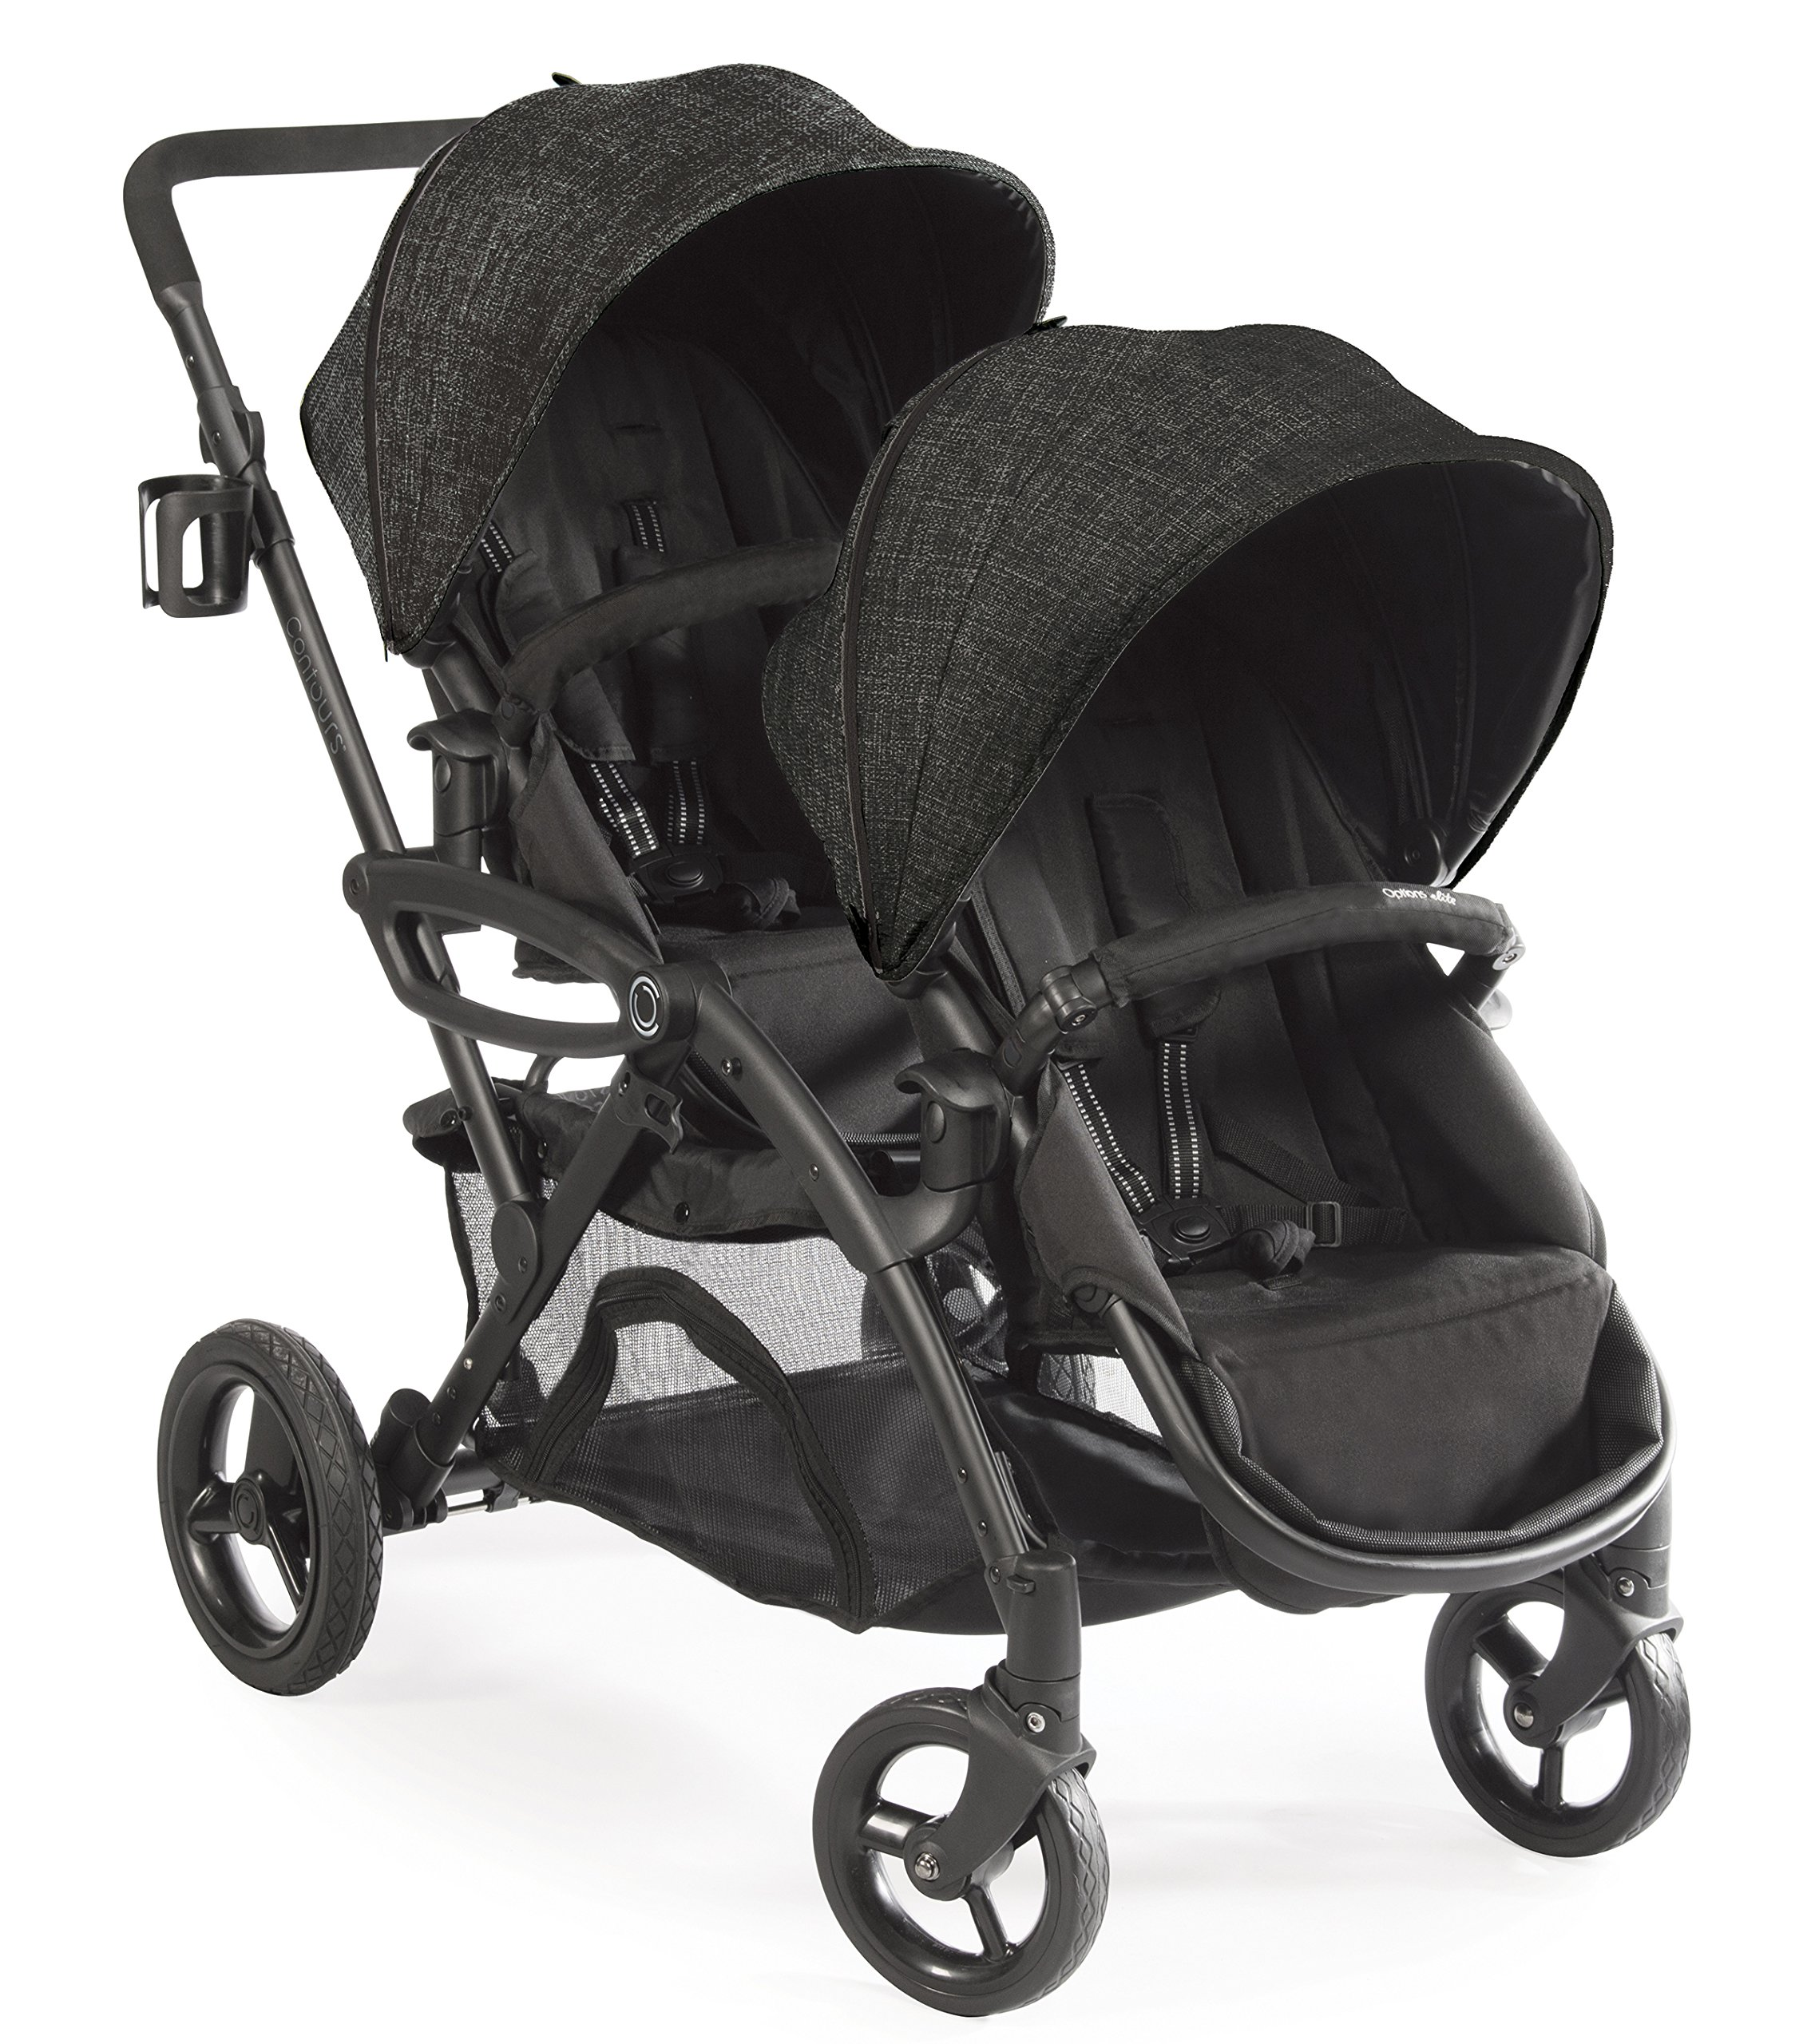 Contours Options Elite Tandem Double Toddler & Baby Stroller, Multiple Seating Configurations, Lightweight Frame, Car Seat Compatibility, Carbon Gray by Contours